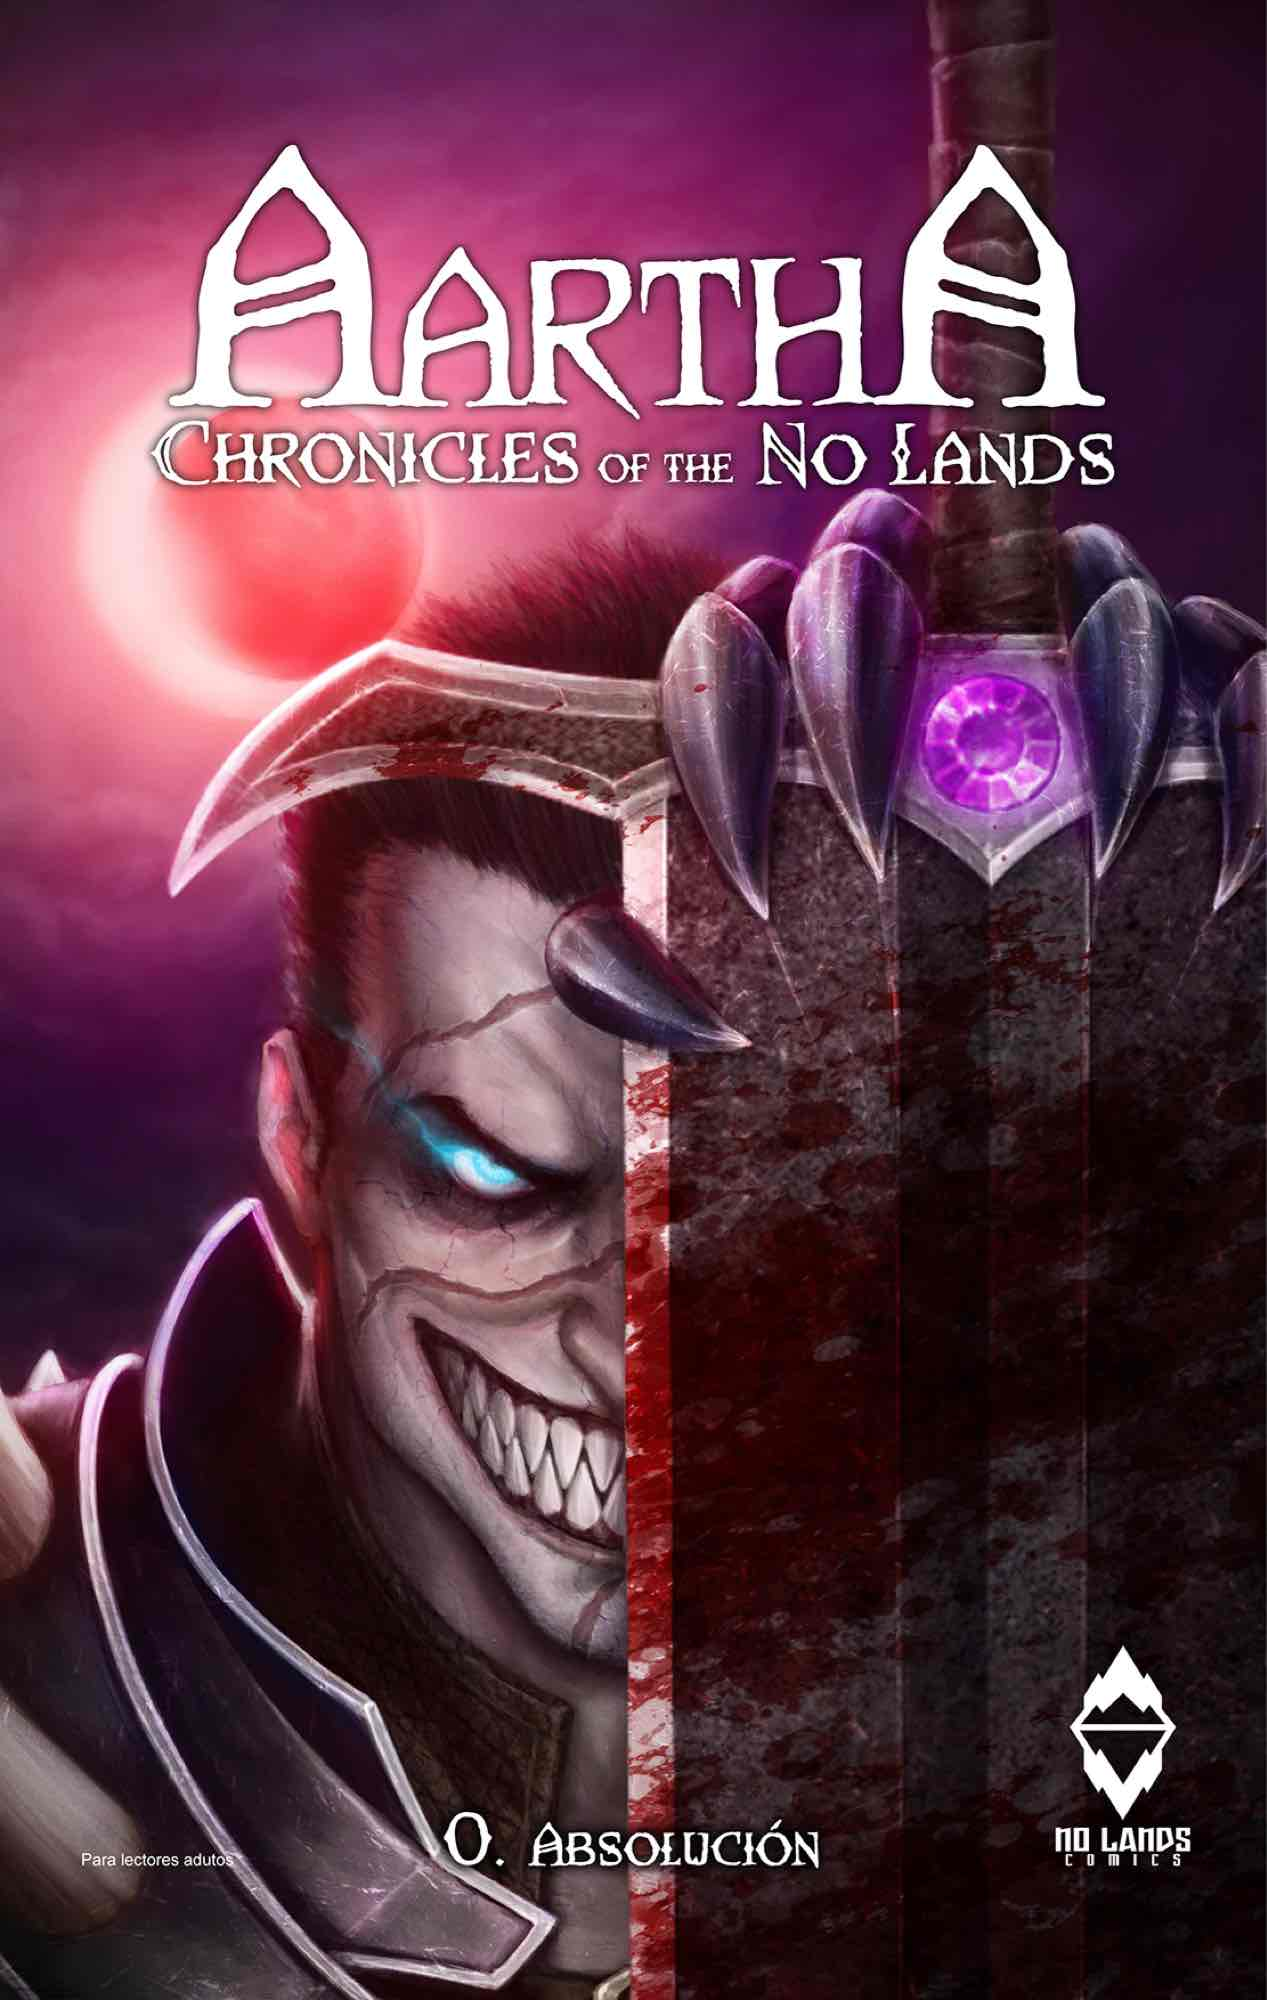 AARTHA. CHRONICLES OF THE NO LANDS 00. ABSOLUCION